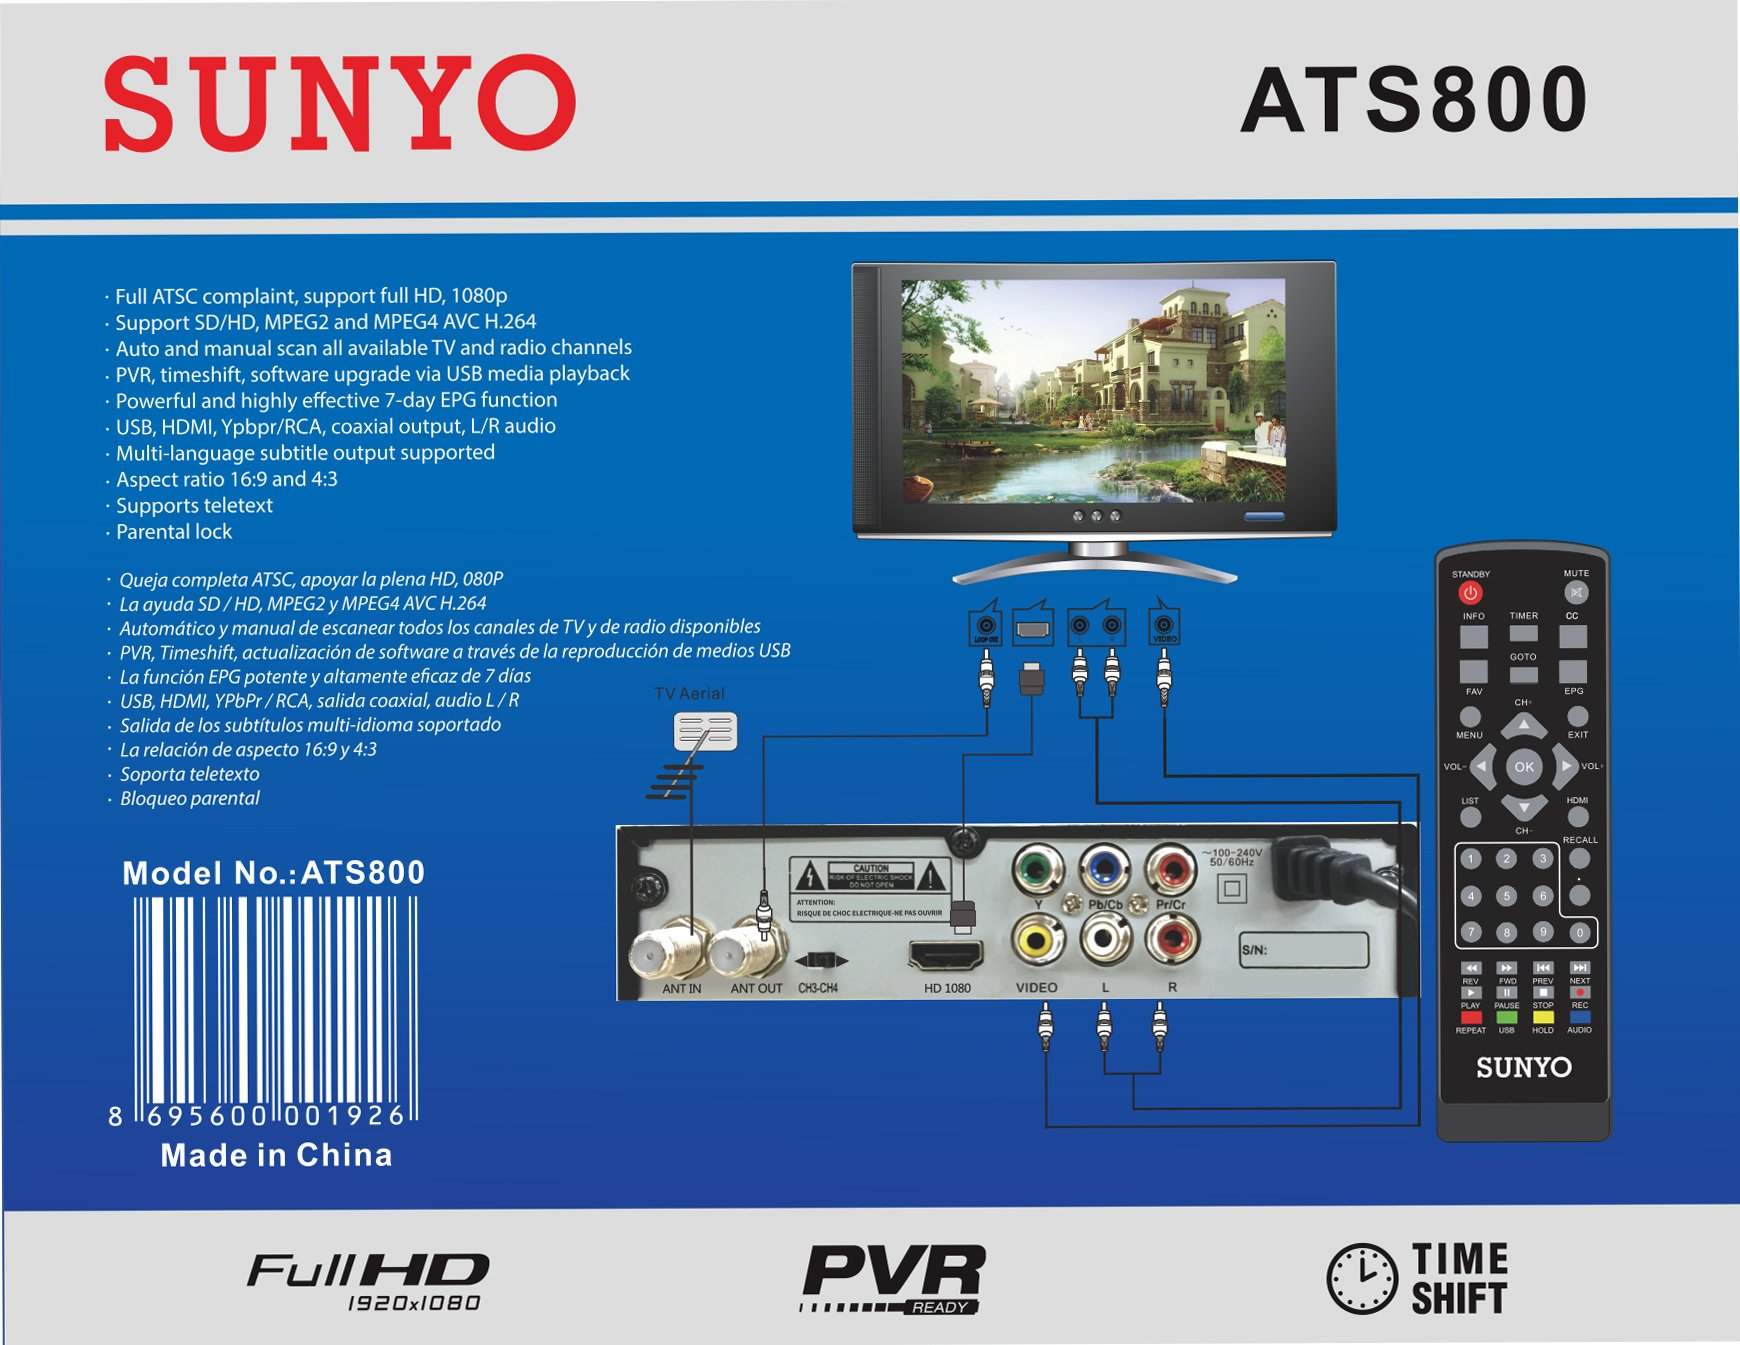 SUNYO ATS800 ATSC Digital TV Converter Box w/ Recording PVR Function / HDMI Out / Coaxial Out / Composite Out / USB Input / LED Time Display (New Model) by SUNYO